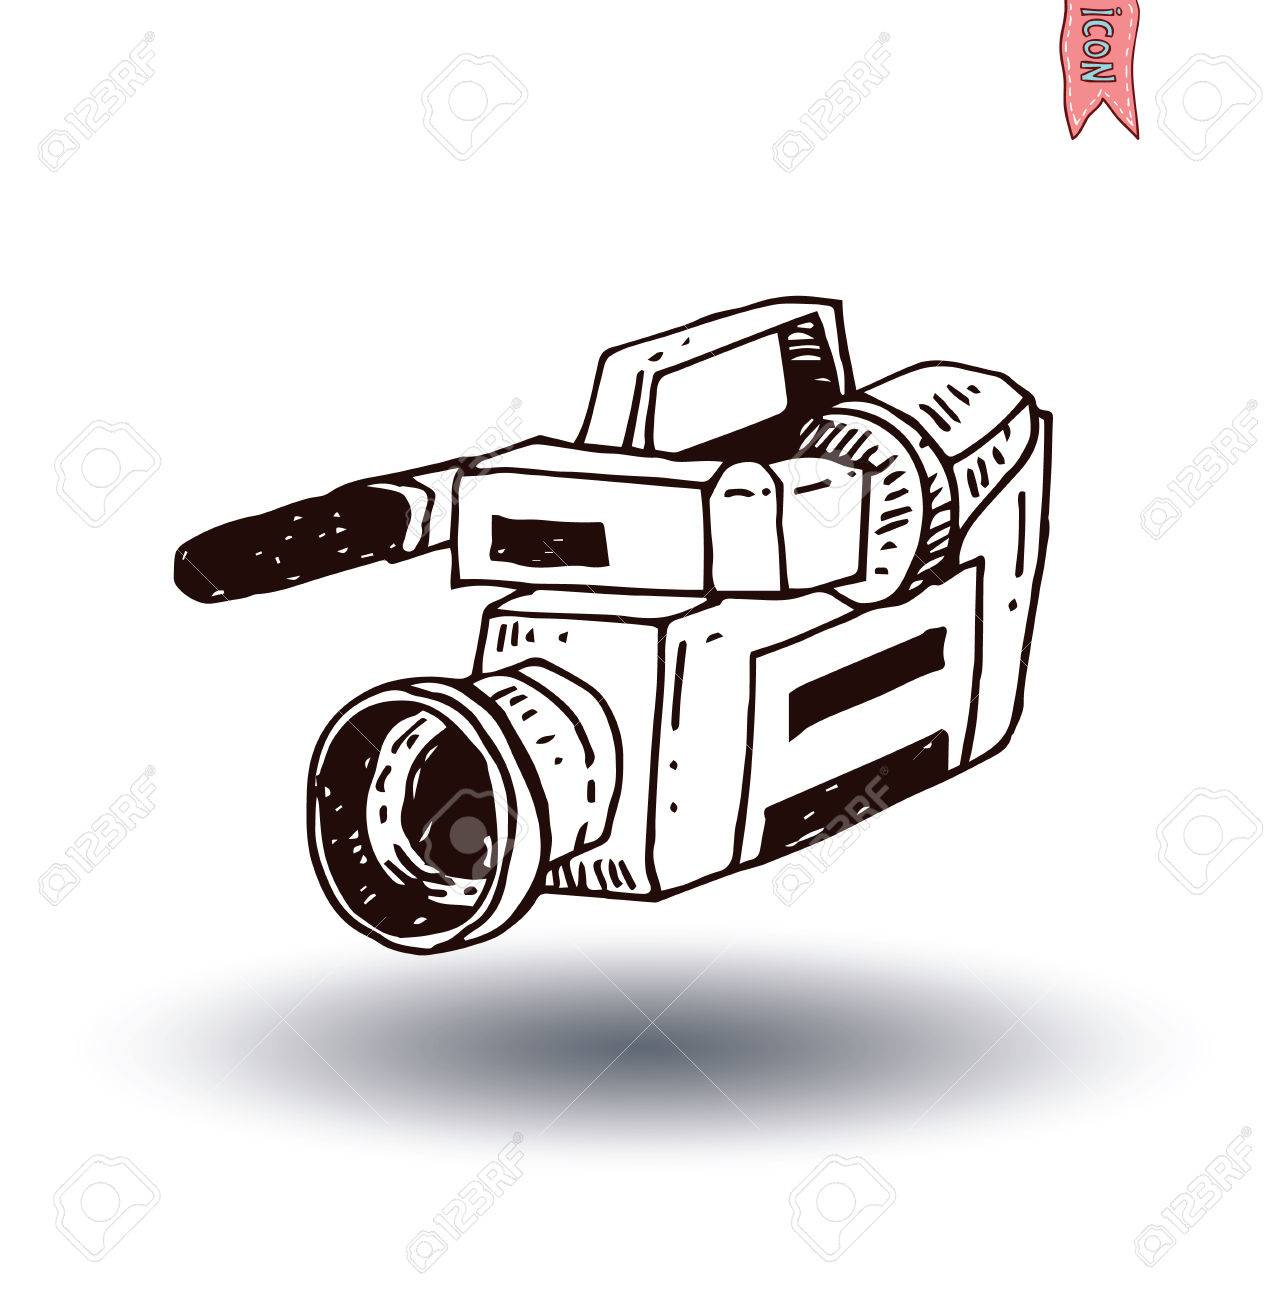 Camcorder Icon Vector Illustration Royalty Free Cliparts Vectors